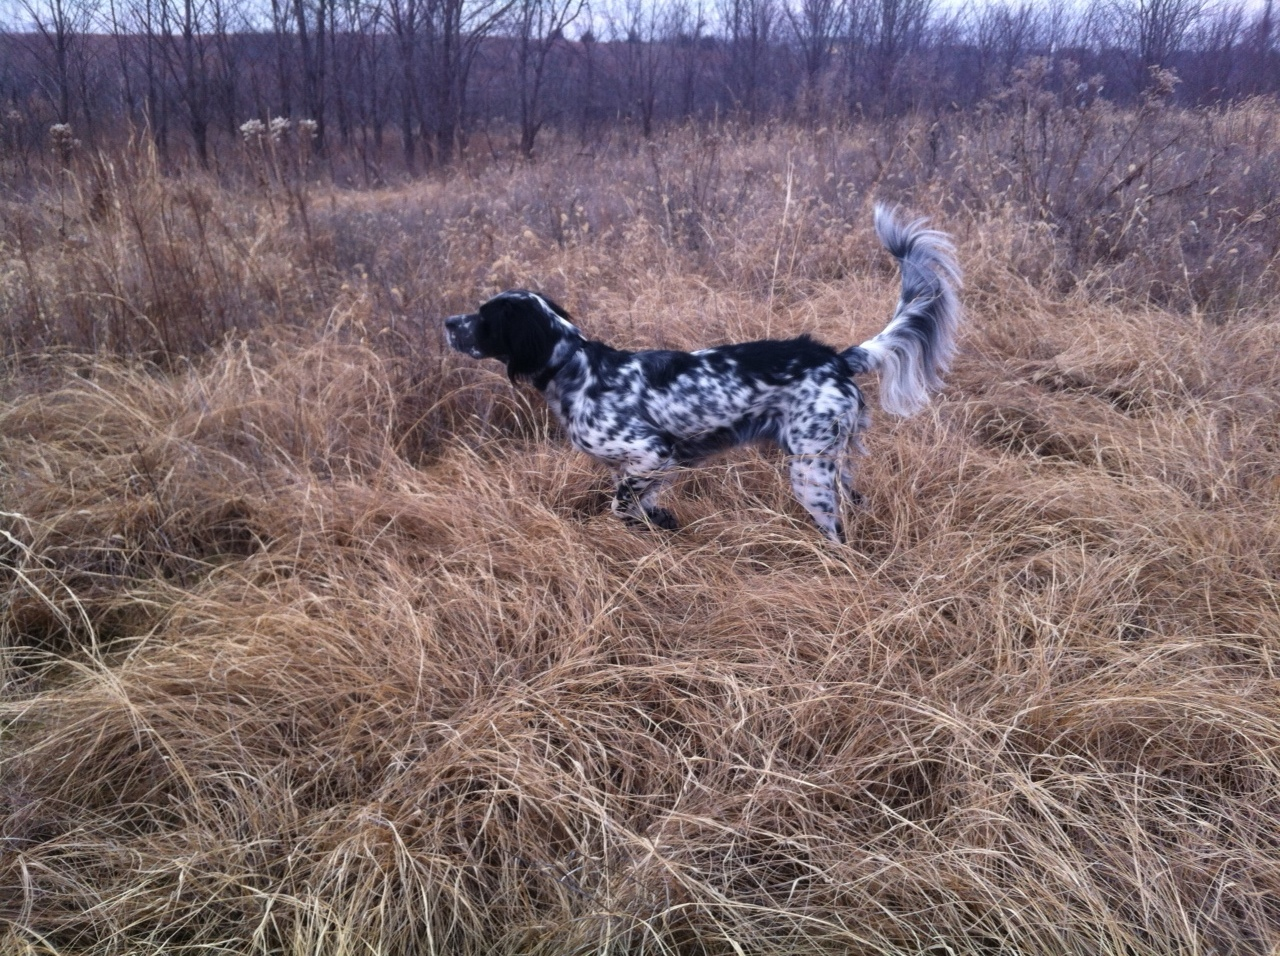 """lady  January 2015  """"We got Lady from George just over a year ago. She is my first bird dog and I trained her myself. She has been so easy to train and has been an amazing hunting partner. George even got her started on retrieving and she delivers birds to hand. My next dog will definitely be from Little River Kennels.""""  Tyler"""